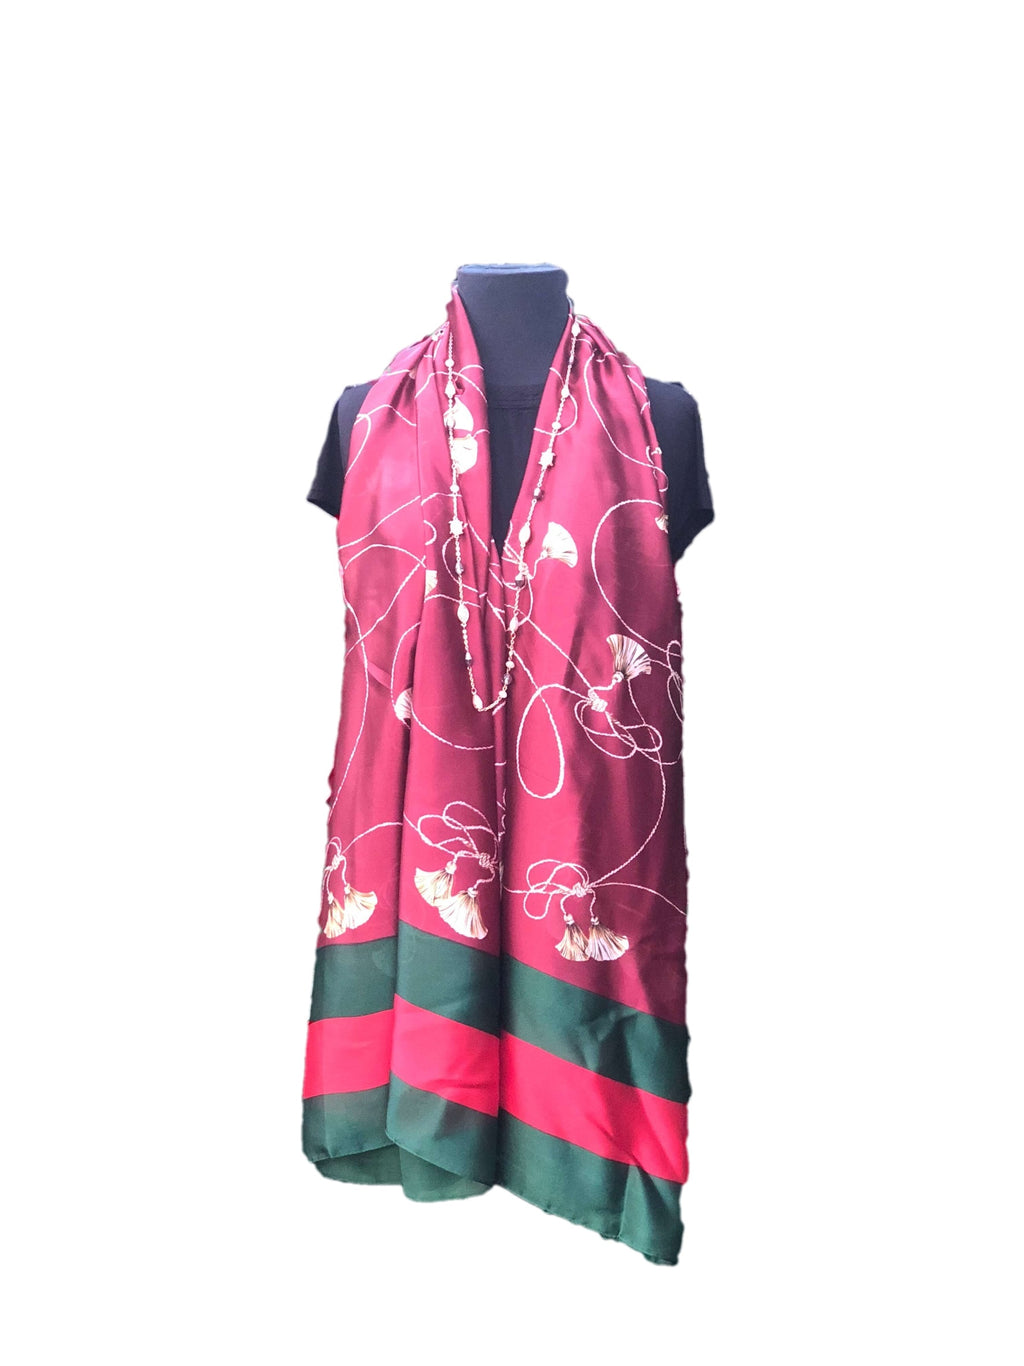 Bright Red/Maroon Patterned Printed Scarf - Global Trendz Fashion®